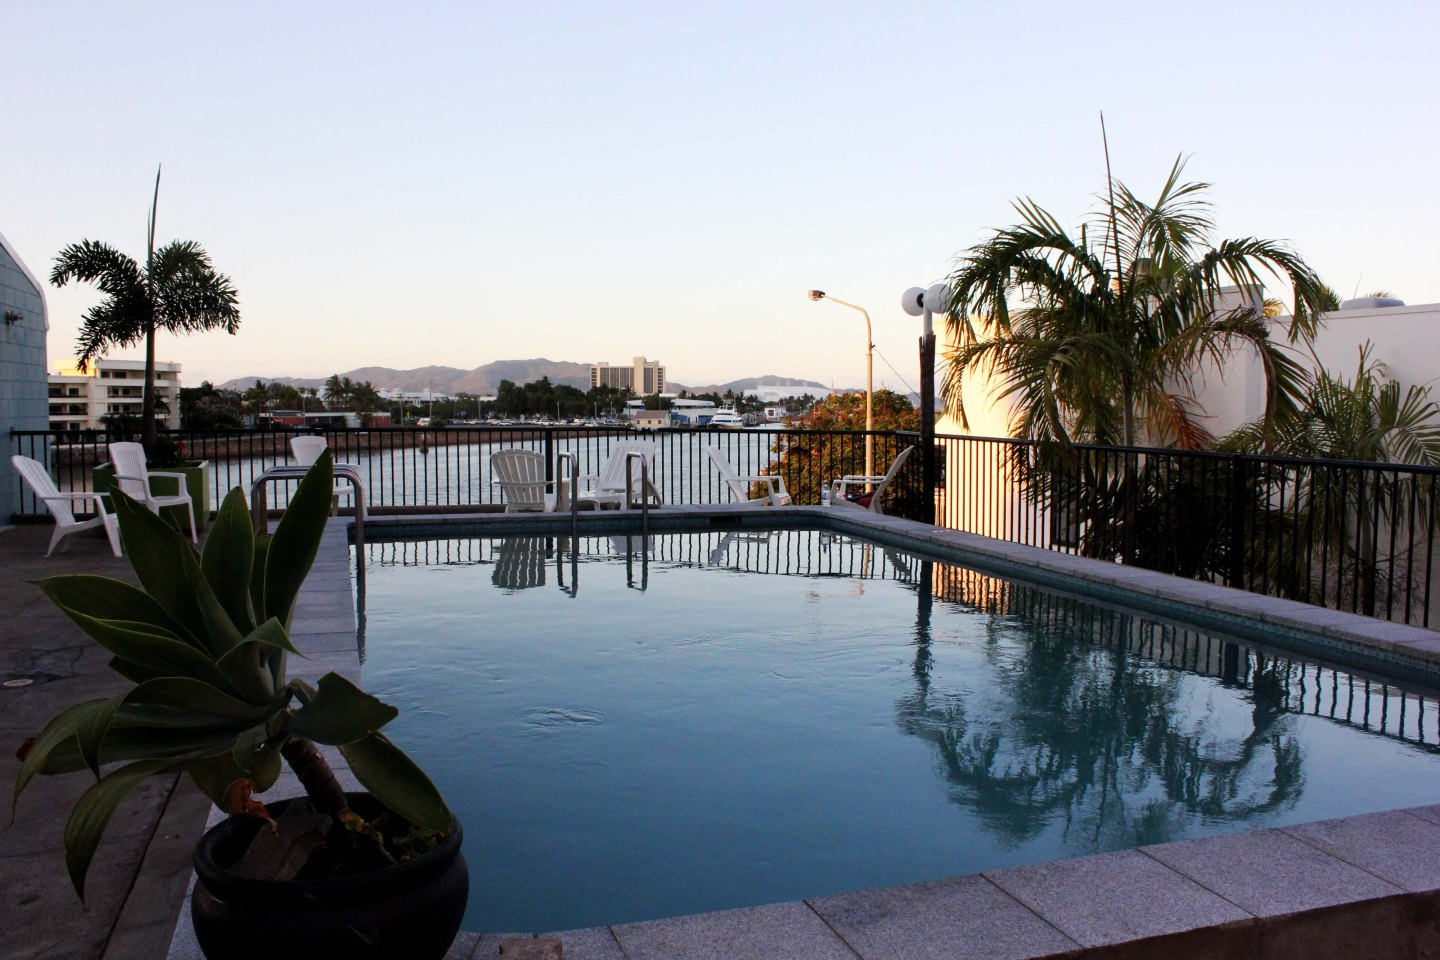 Adventurers Resort, Townsville Hostel Review